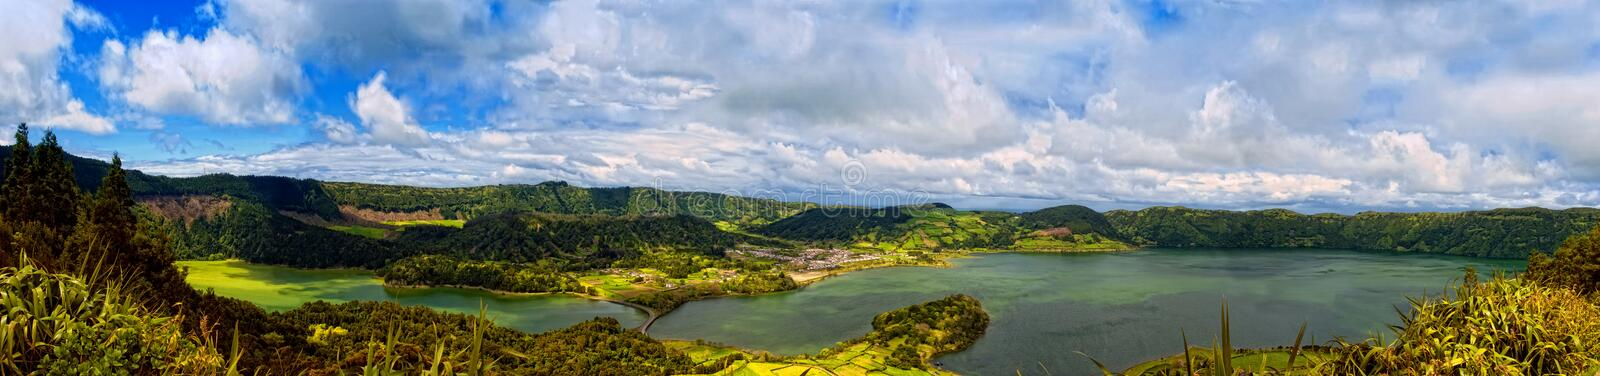 Download Acores; Sao Miguel - Sete Cidades Crater Lakes Stock Image - Image: 26454421